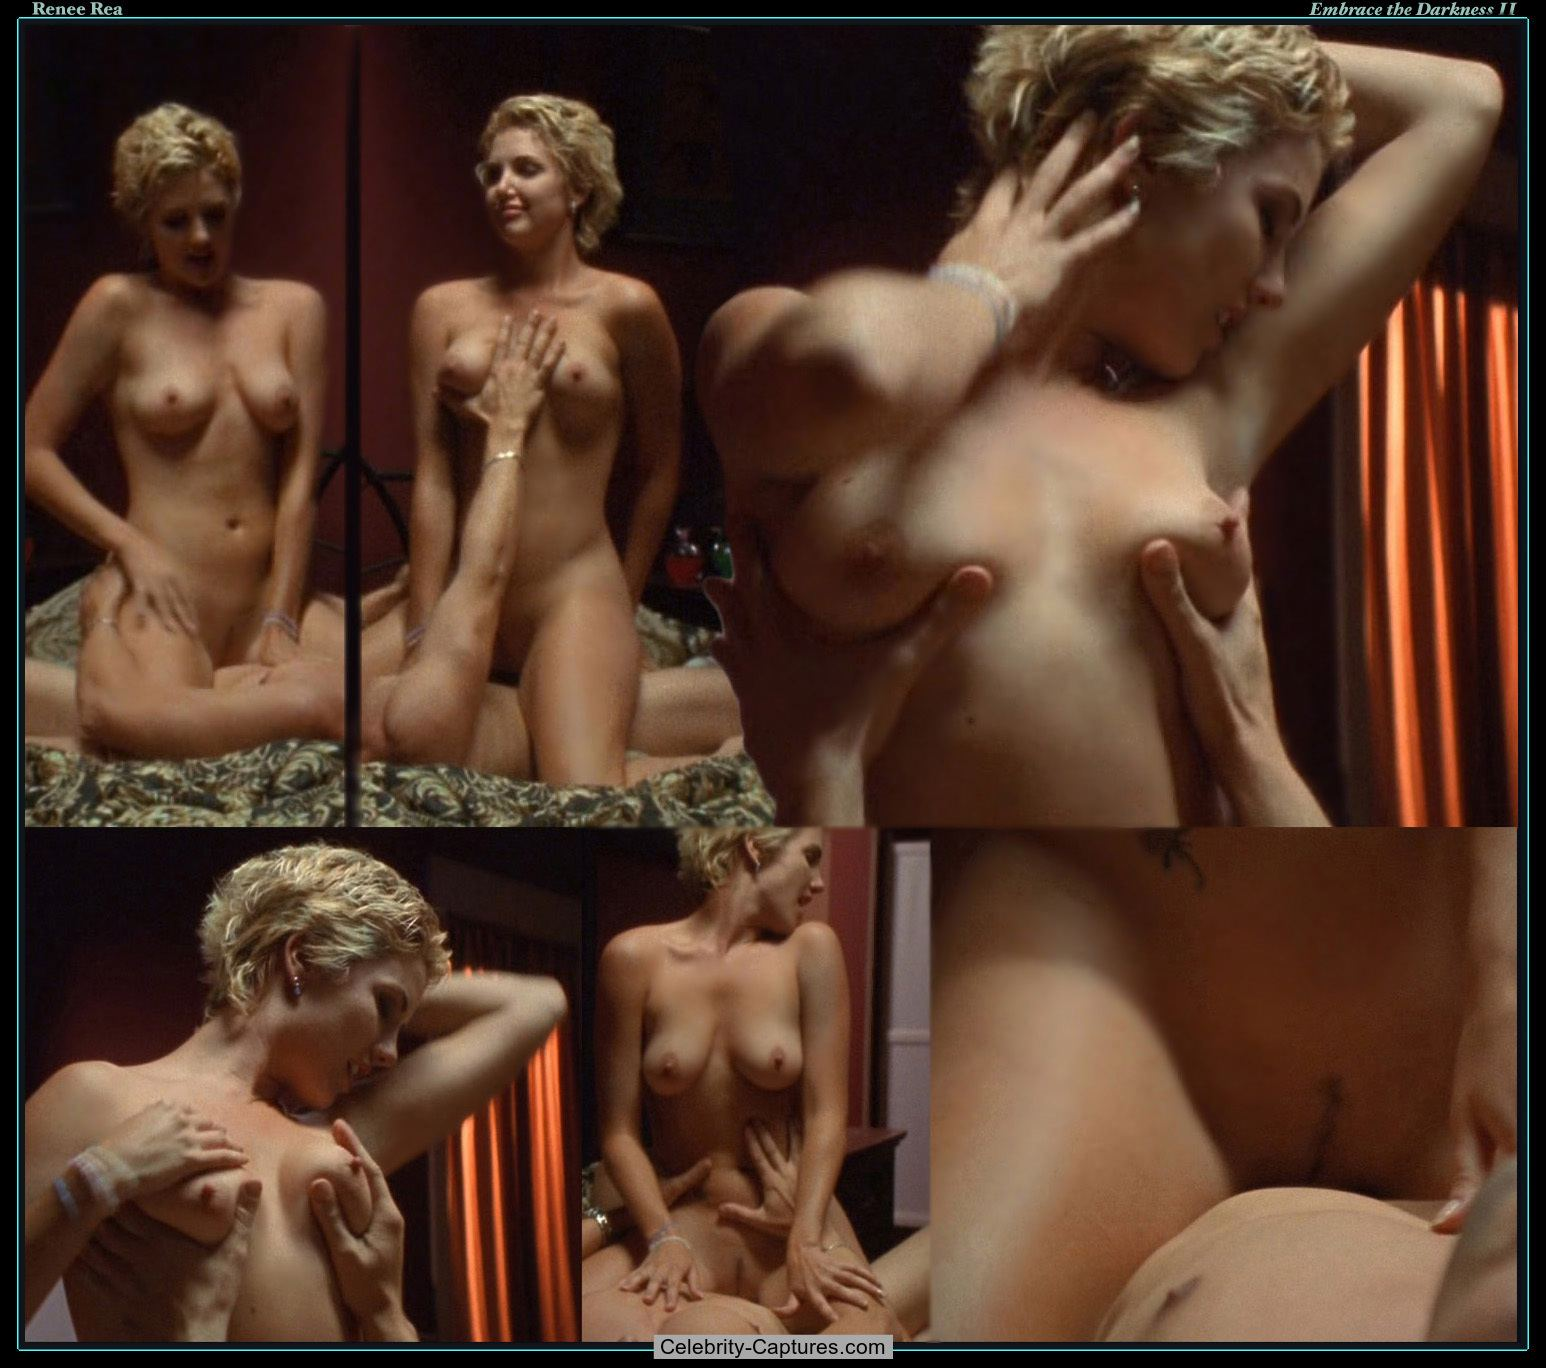 Renee rea gets naked for the tub porn photo